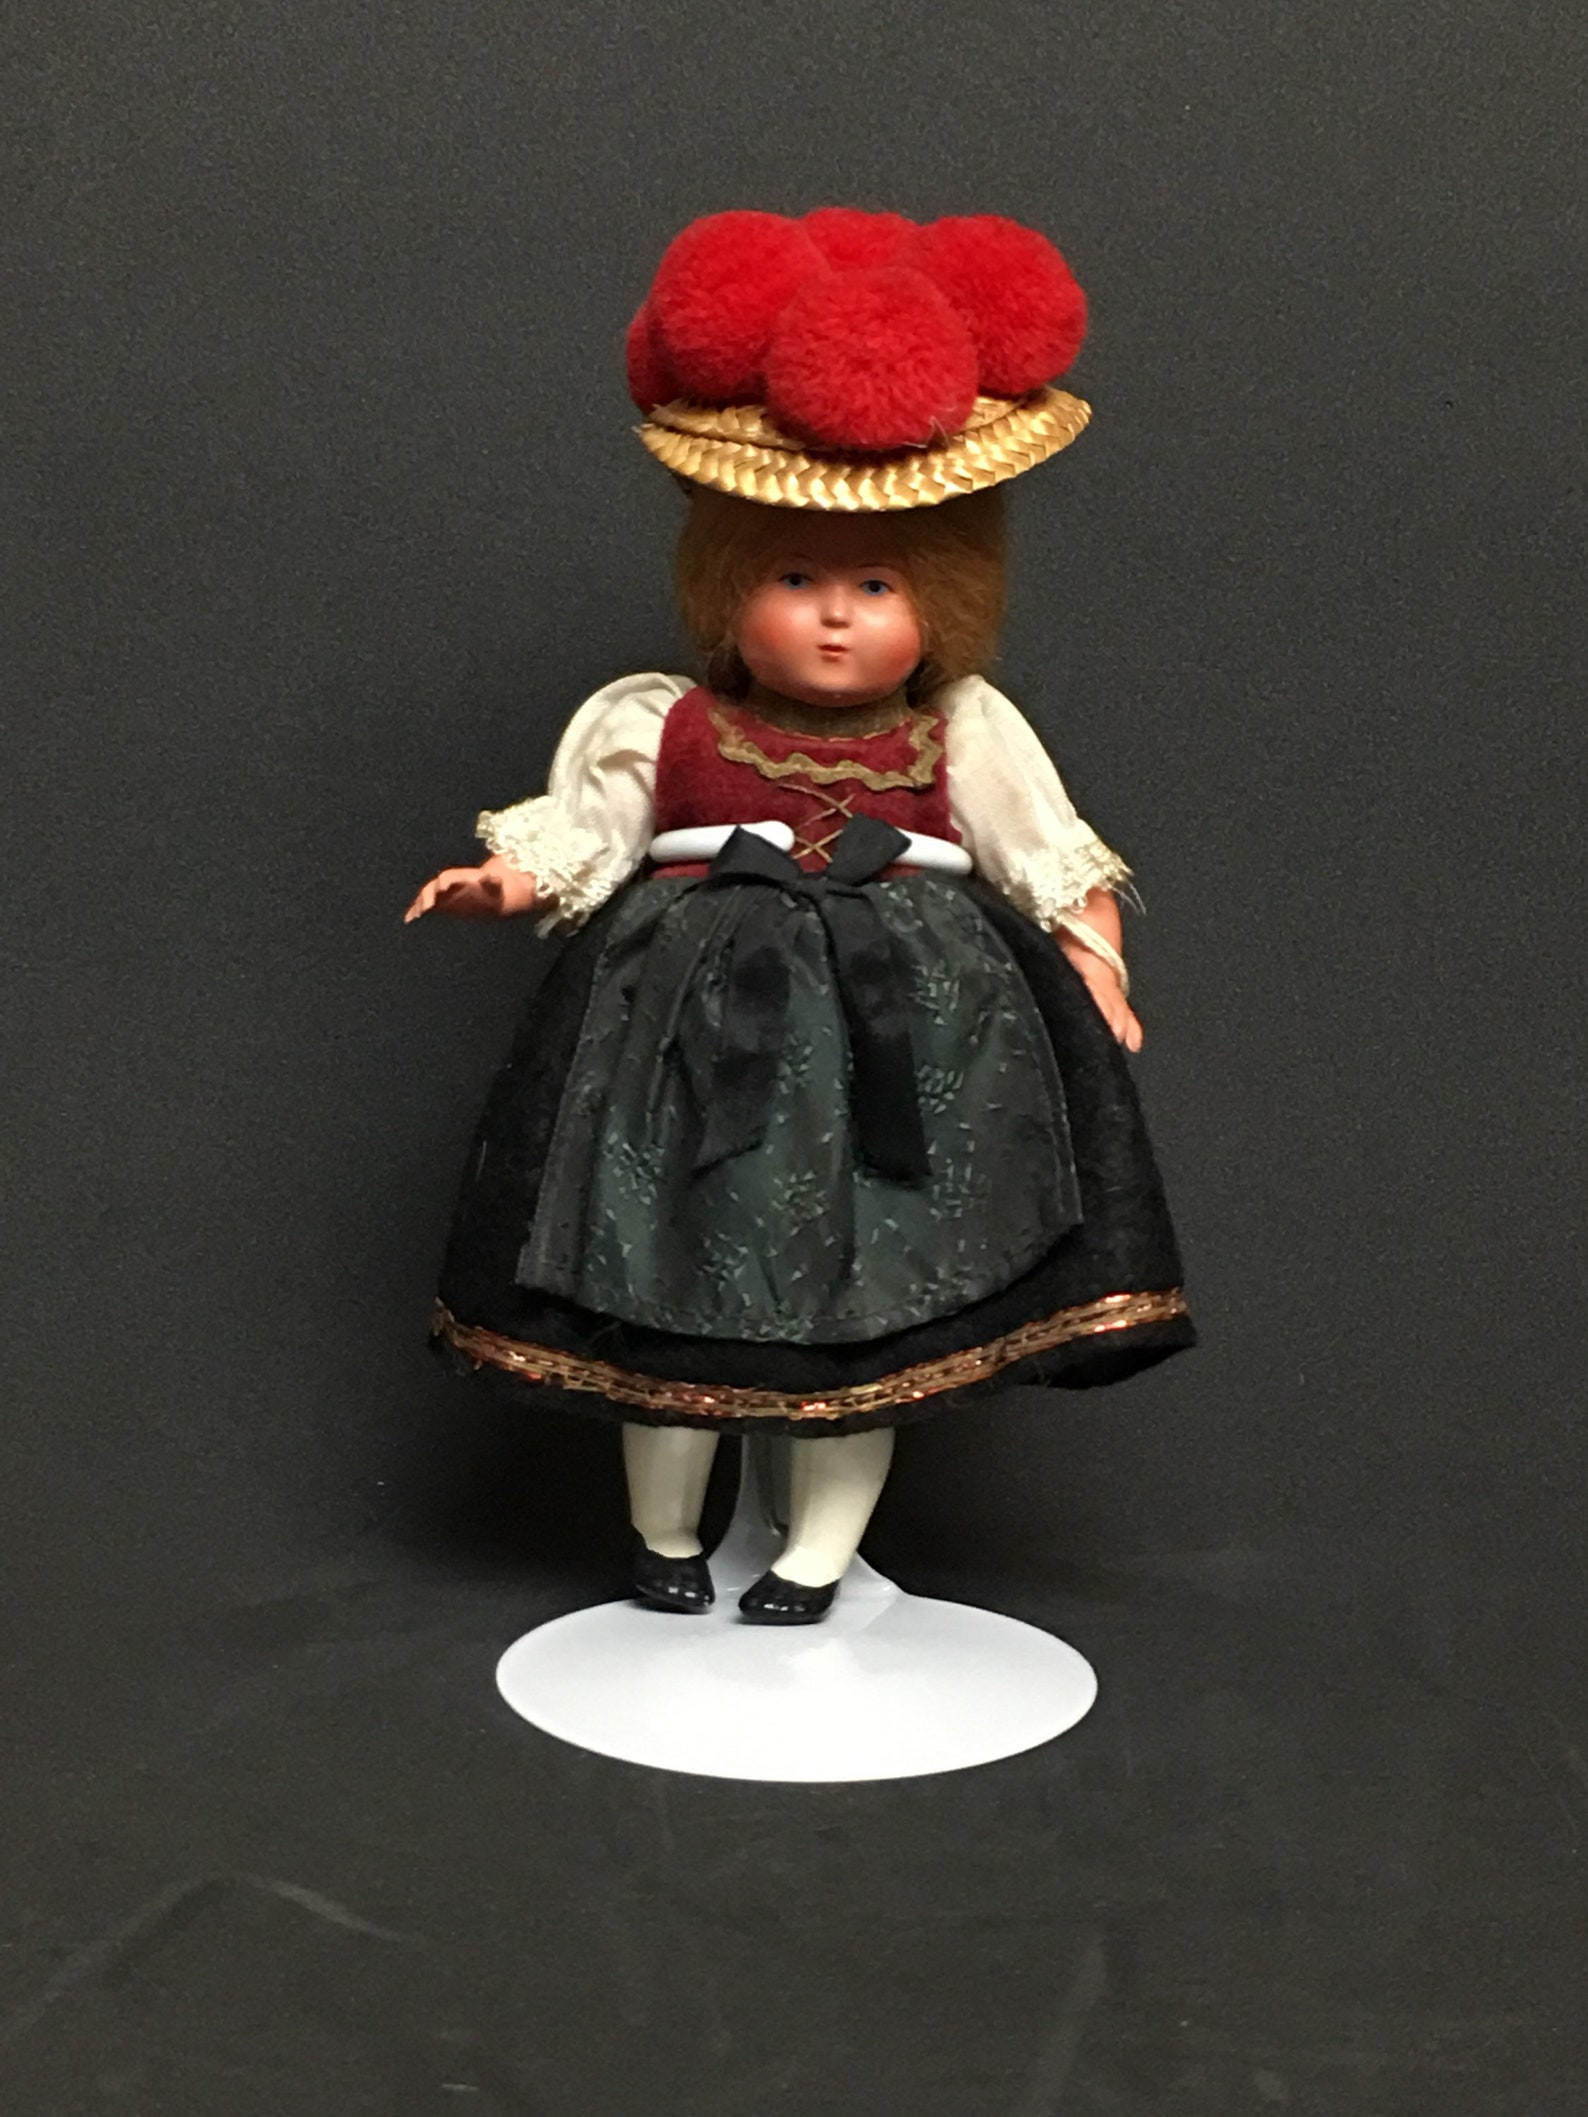 Vintage German Celluloid Black Forest Doll - Rheinische Gummi Turtle Mark - with Stand